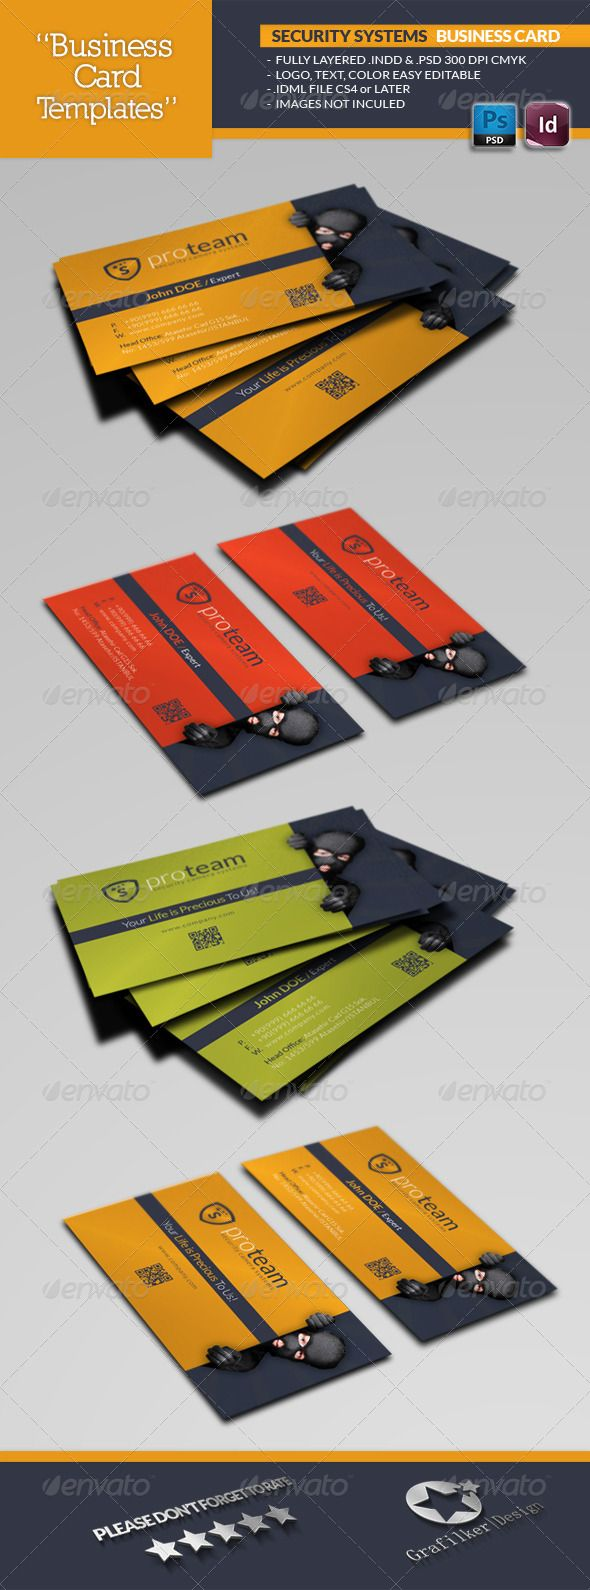 Security systems business card template security systems card security systems business card template graphicriver security systems business card template fully layered indd fully layered psd 300 dpi cmyk idml format reheart Image collections